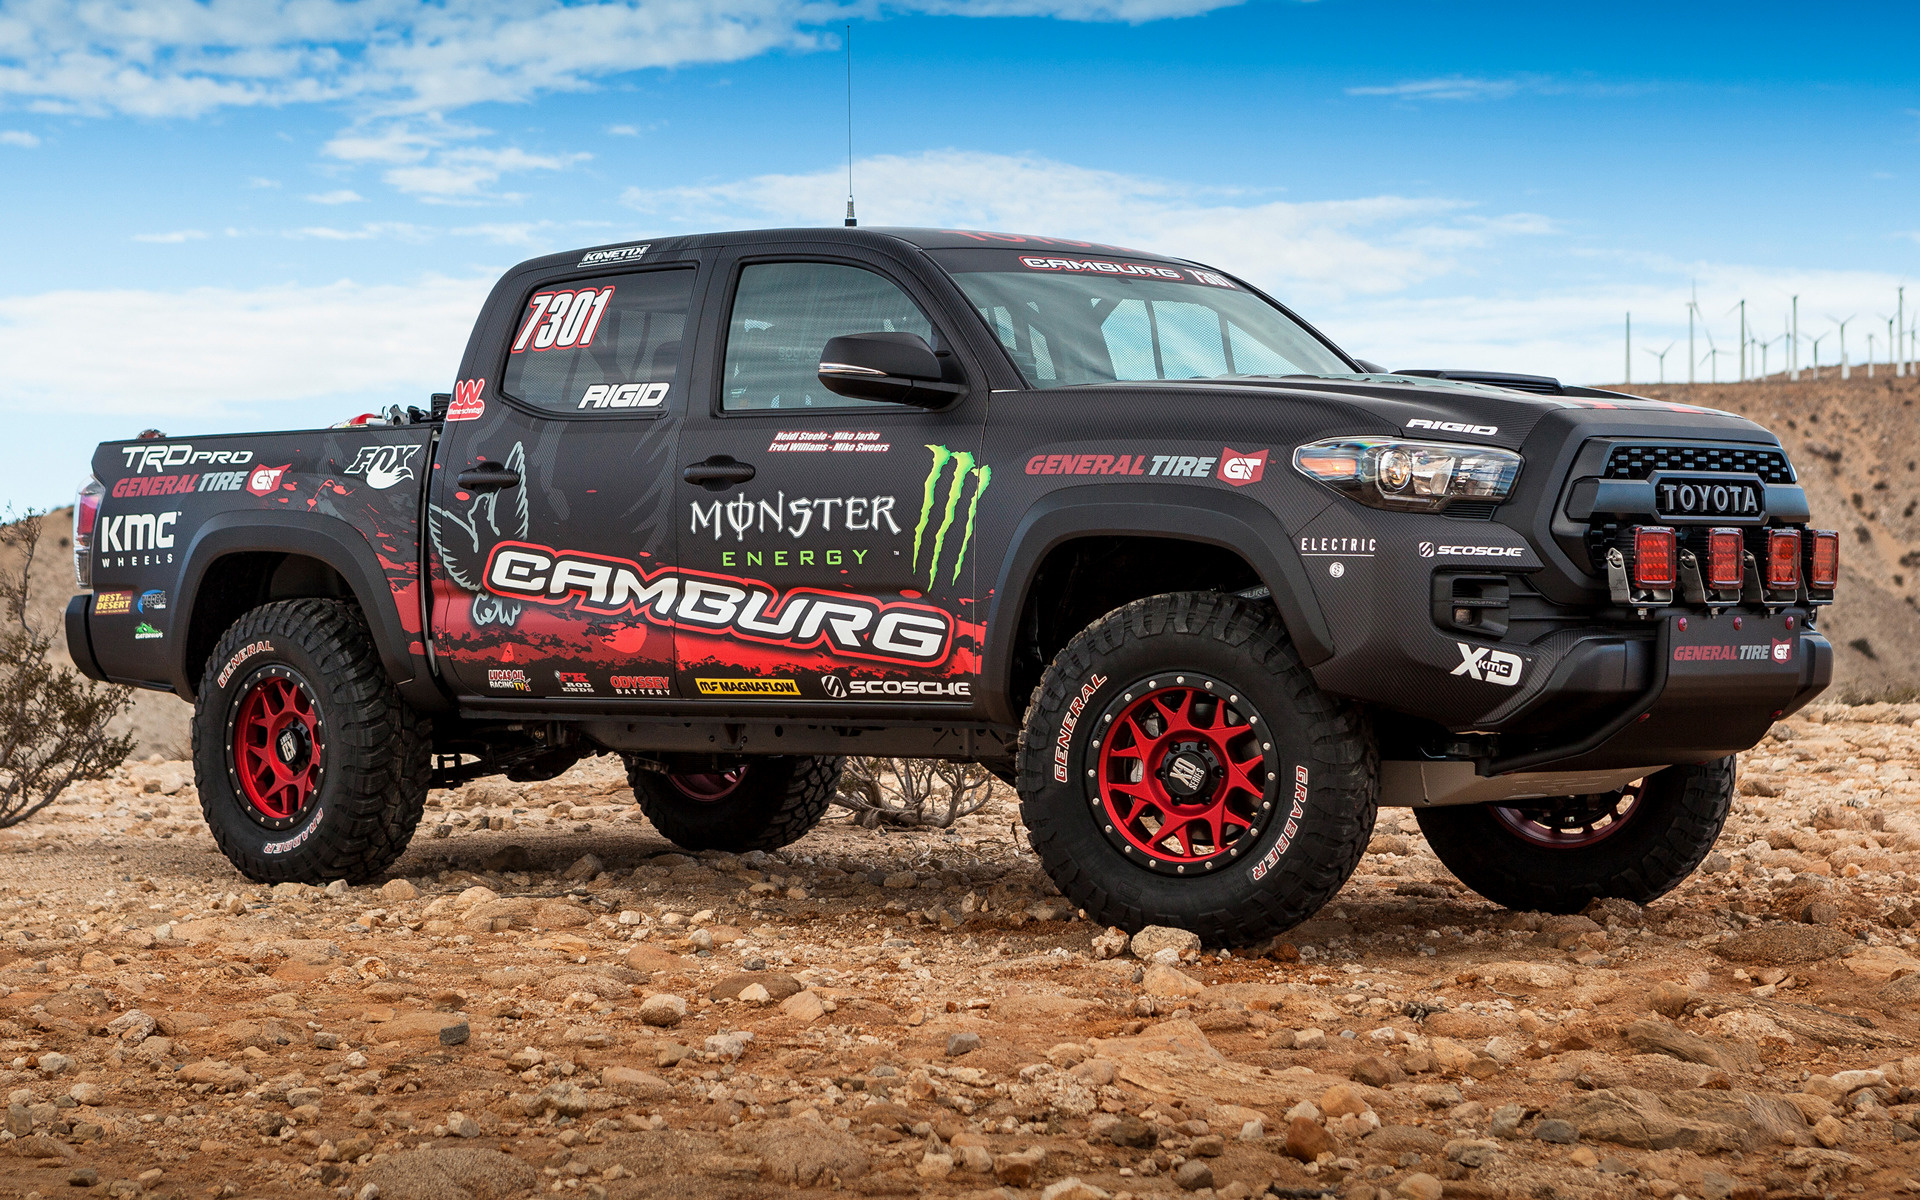 2016 Toyota Tacoma TRD Pro Race Truck - Wallpapers and HD Images | Car Pixel